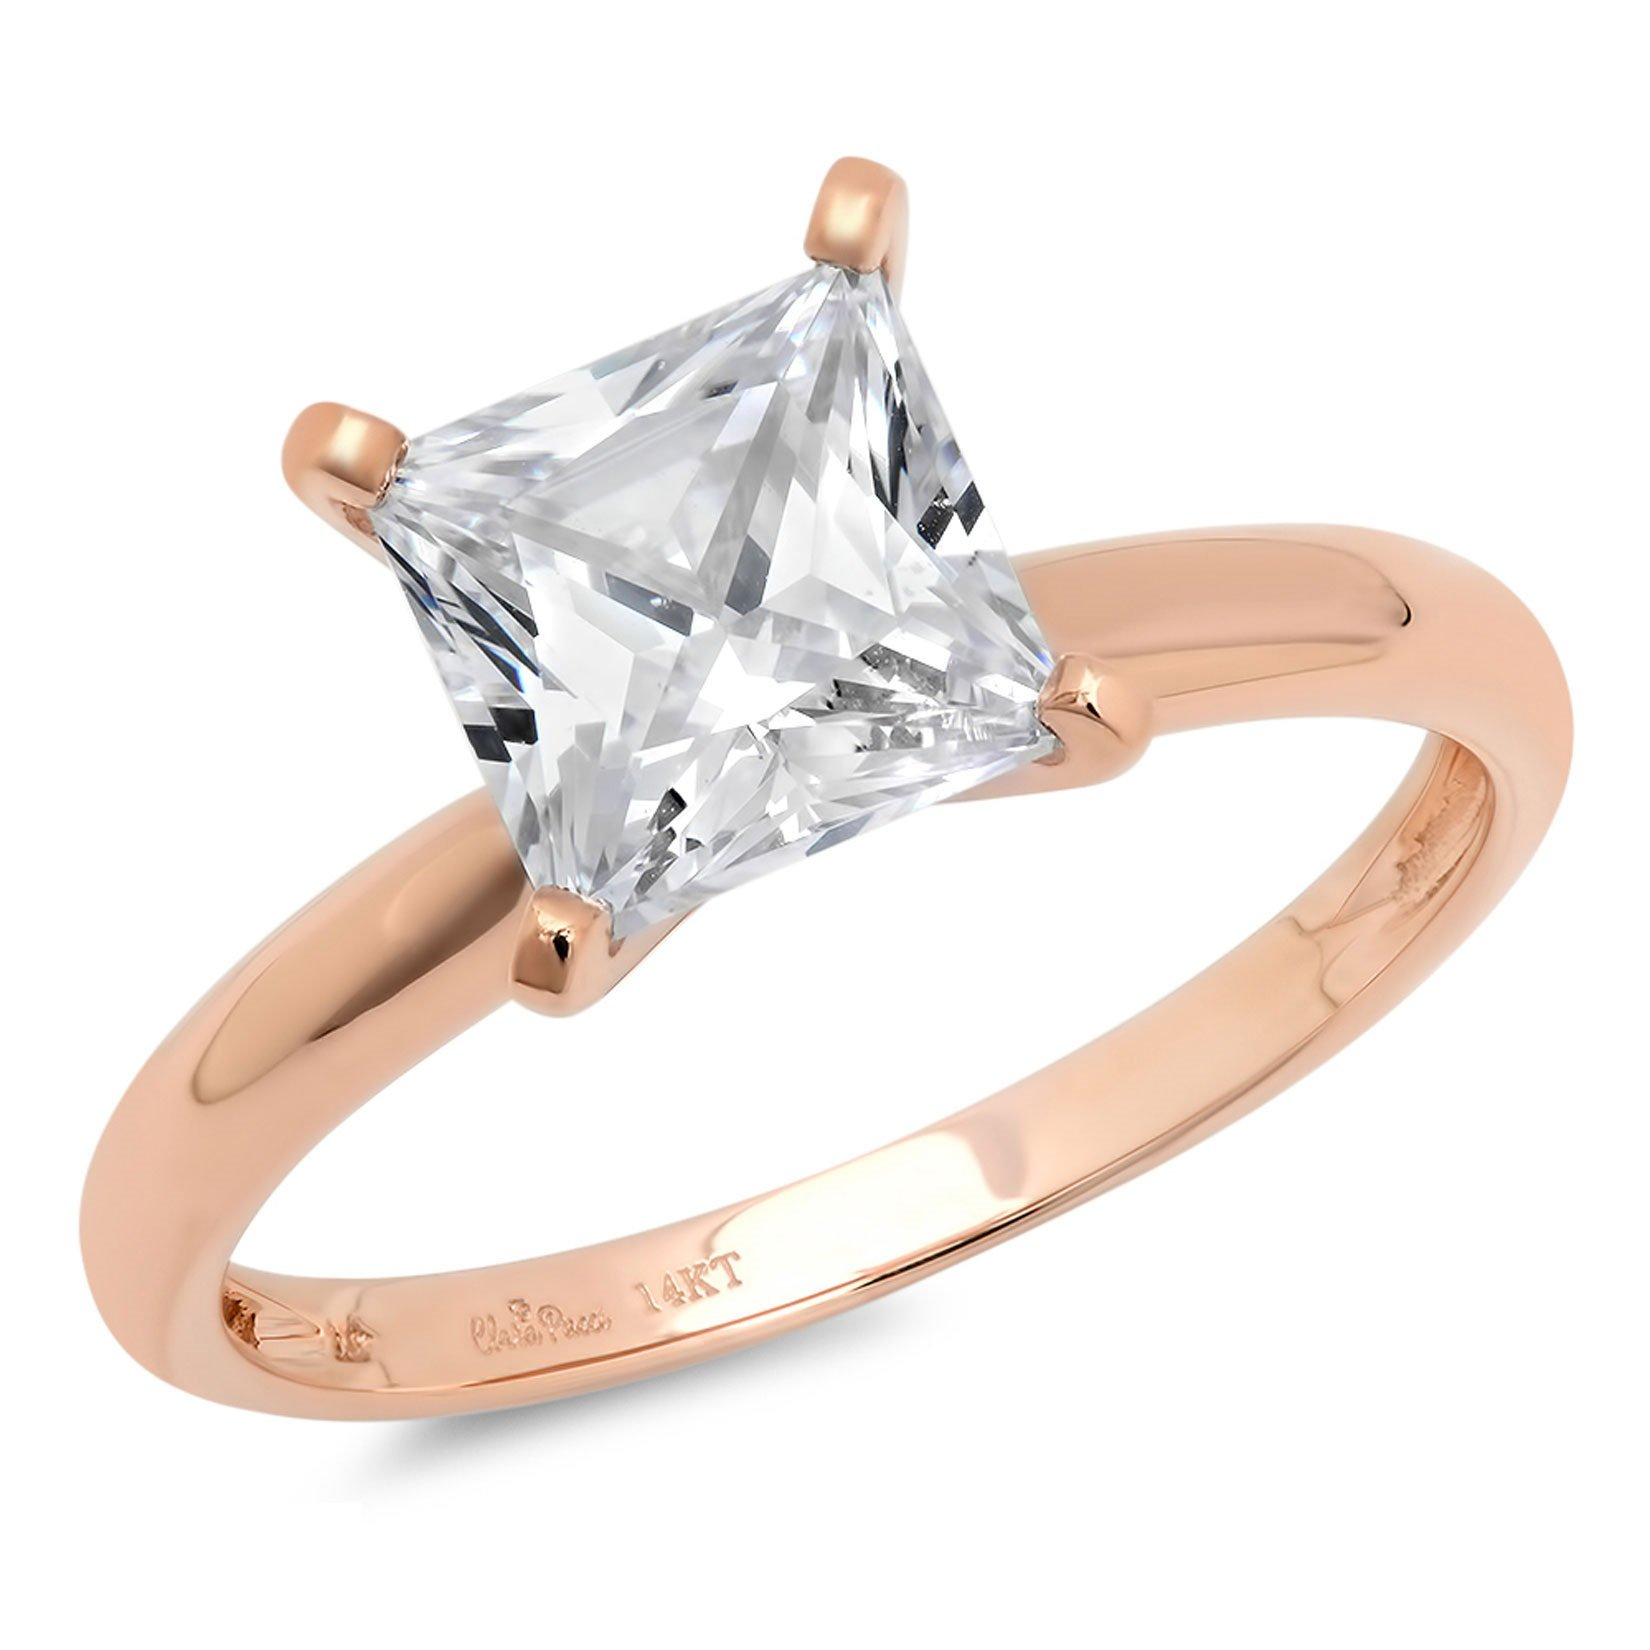 0.45ct Brilliant Princess Cut Solitaire Highest Quality Lab Created White Sapphire Ideal VVS1 D 4-Prong Classic Designer Statement Ring in Solid Real 14k Rose Gold for Women